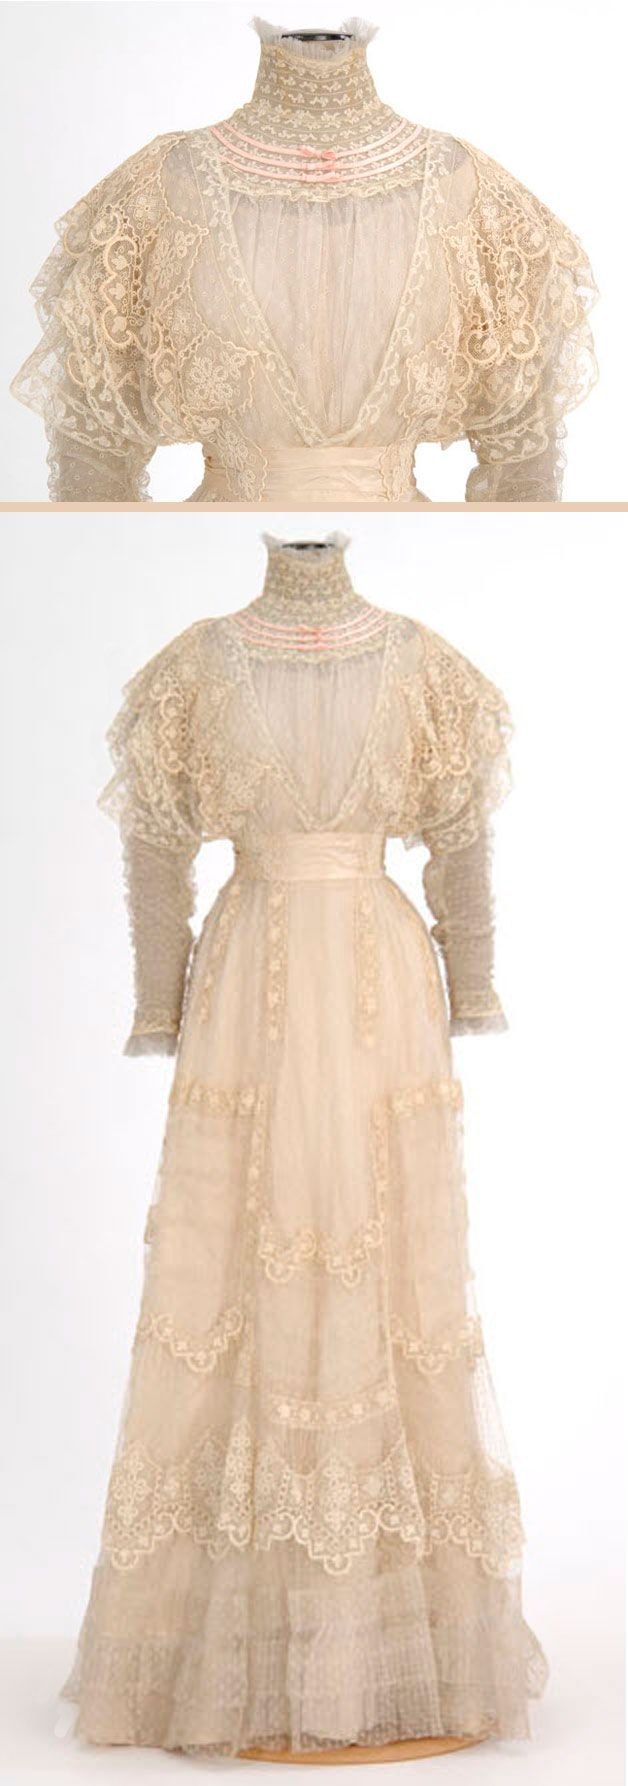 Circa 1900-1909 white lace summer dress by Mme. Rose H. Boyd, Minneapolis, MN, via Minnesota Historical Society.